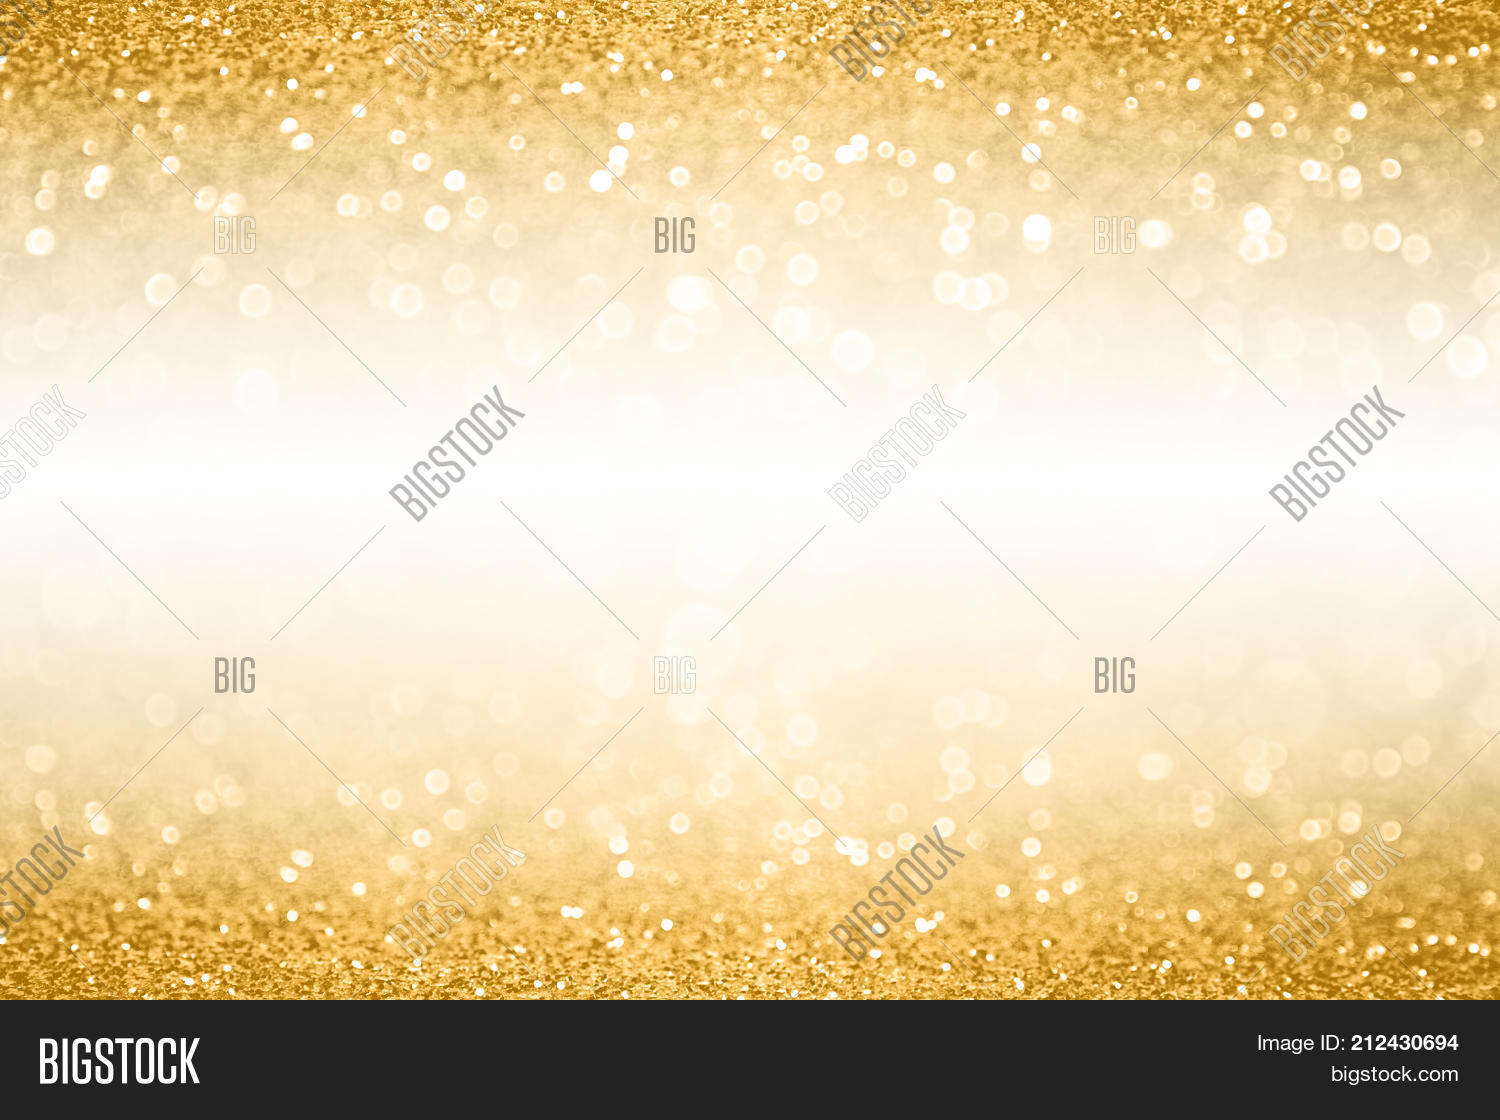 50,50th,ad,anniversary,backdrop,background,backround,banner,birthday,bling,blur,border,bridal,bubbles,celebration,champagne,champaign,christmas,coin,confetti,elegant,eve,fancy,fashion,glam,gliter,glitter,glittery,glitz,glitzy,gold,golden,happy,invitation,invite,light,luxury,new,party,pattern,s,sale,sequin,spark,sparkle,sparkly,texture,wedding,white,year